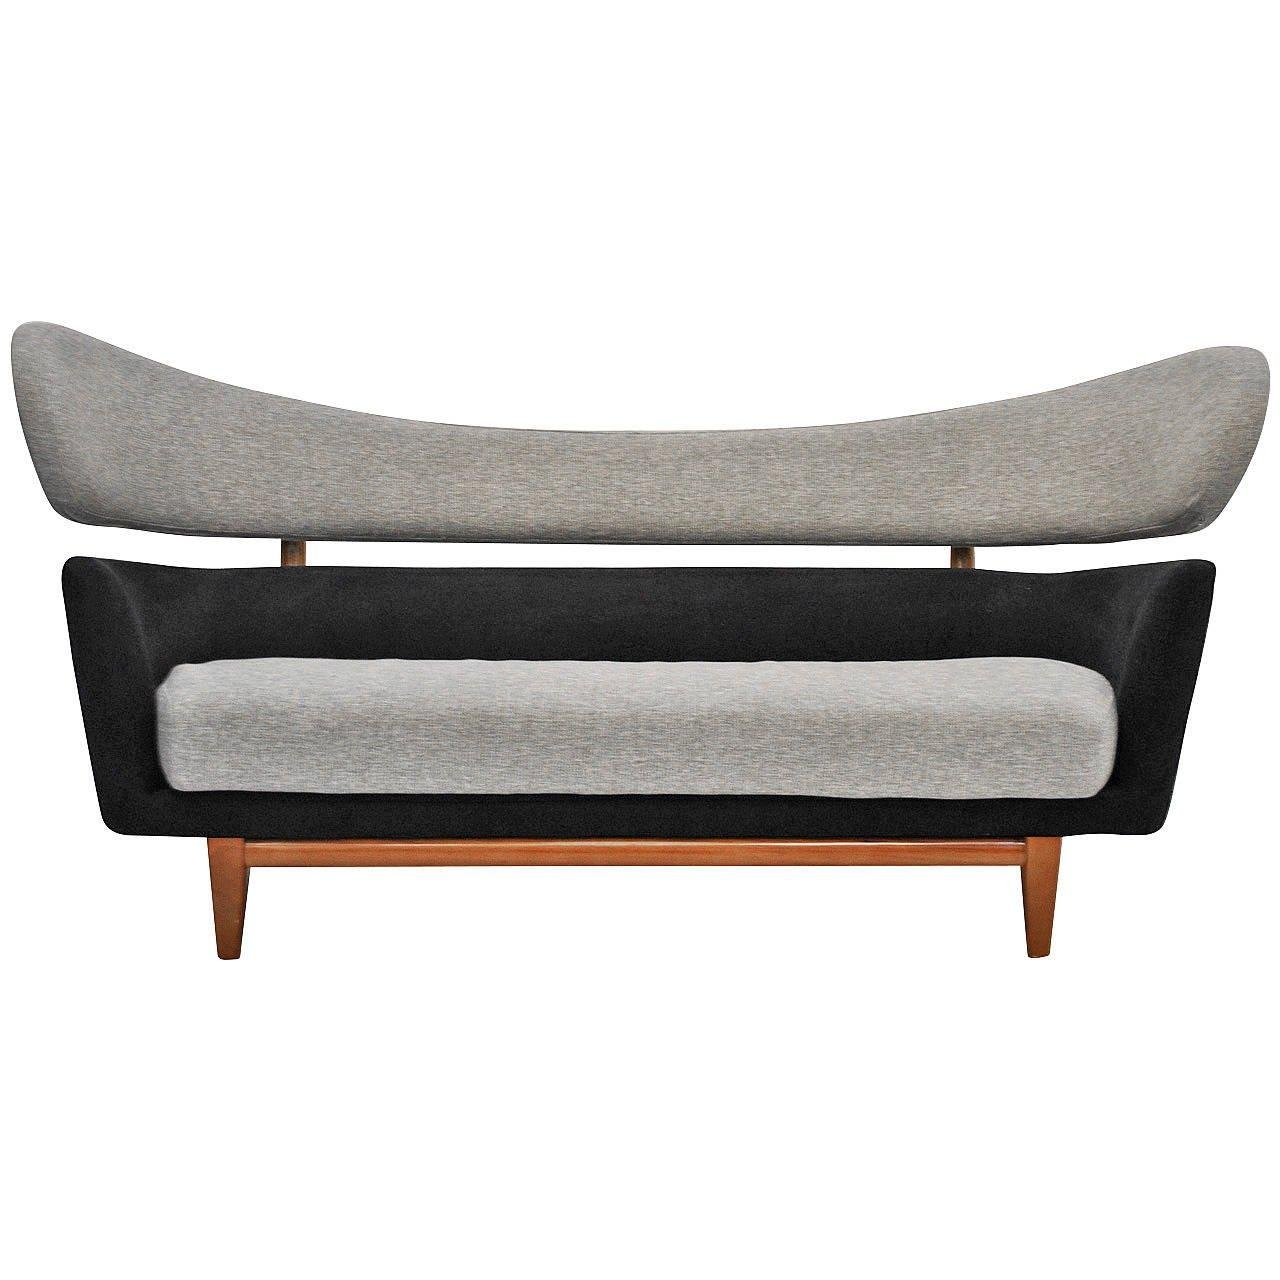 Vintage 'baker' Style Sofa At 1Stdibs Regarding Bench Style Sofas (Image 18 of 20)